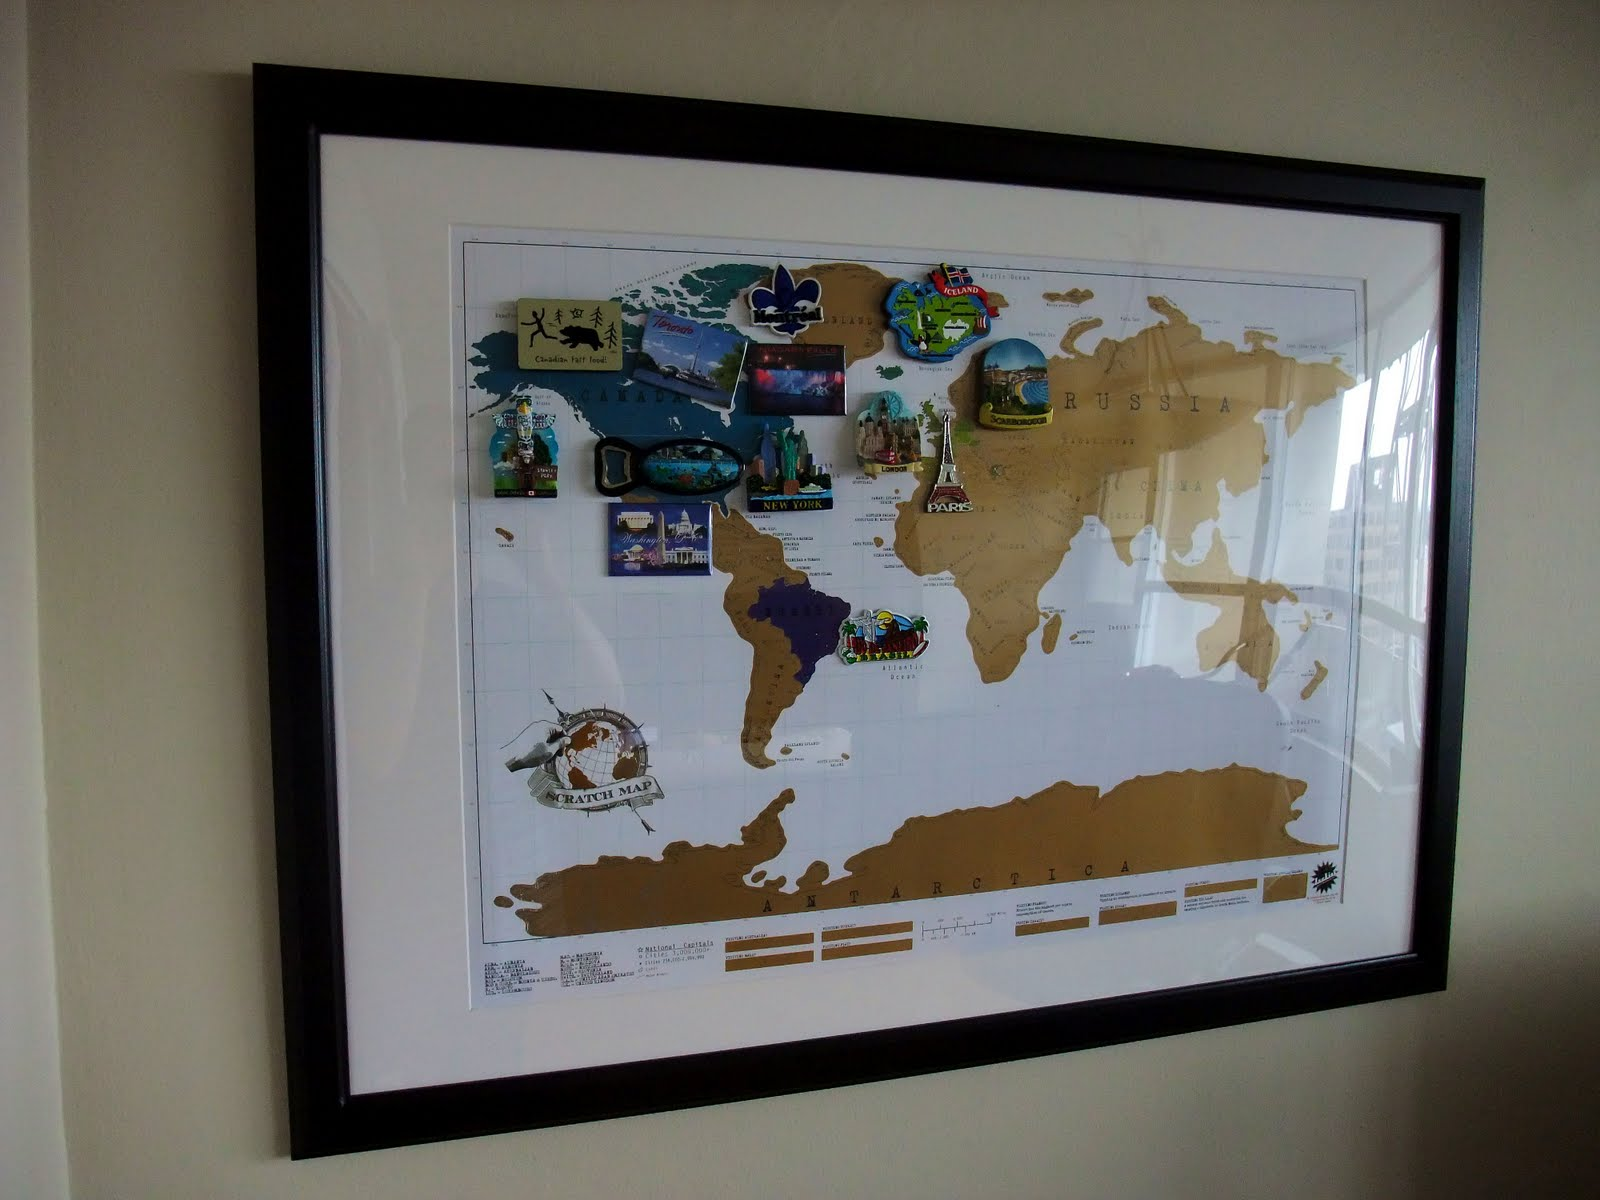 scratch-map-framed